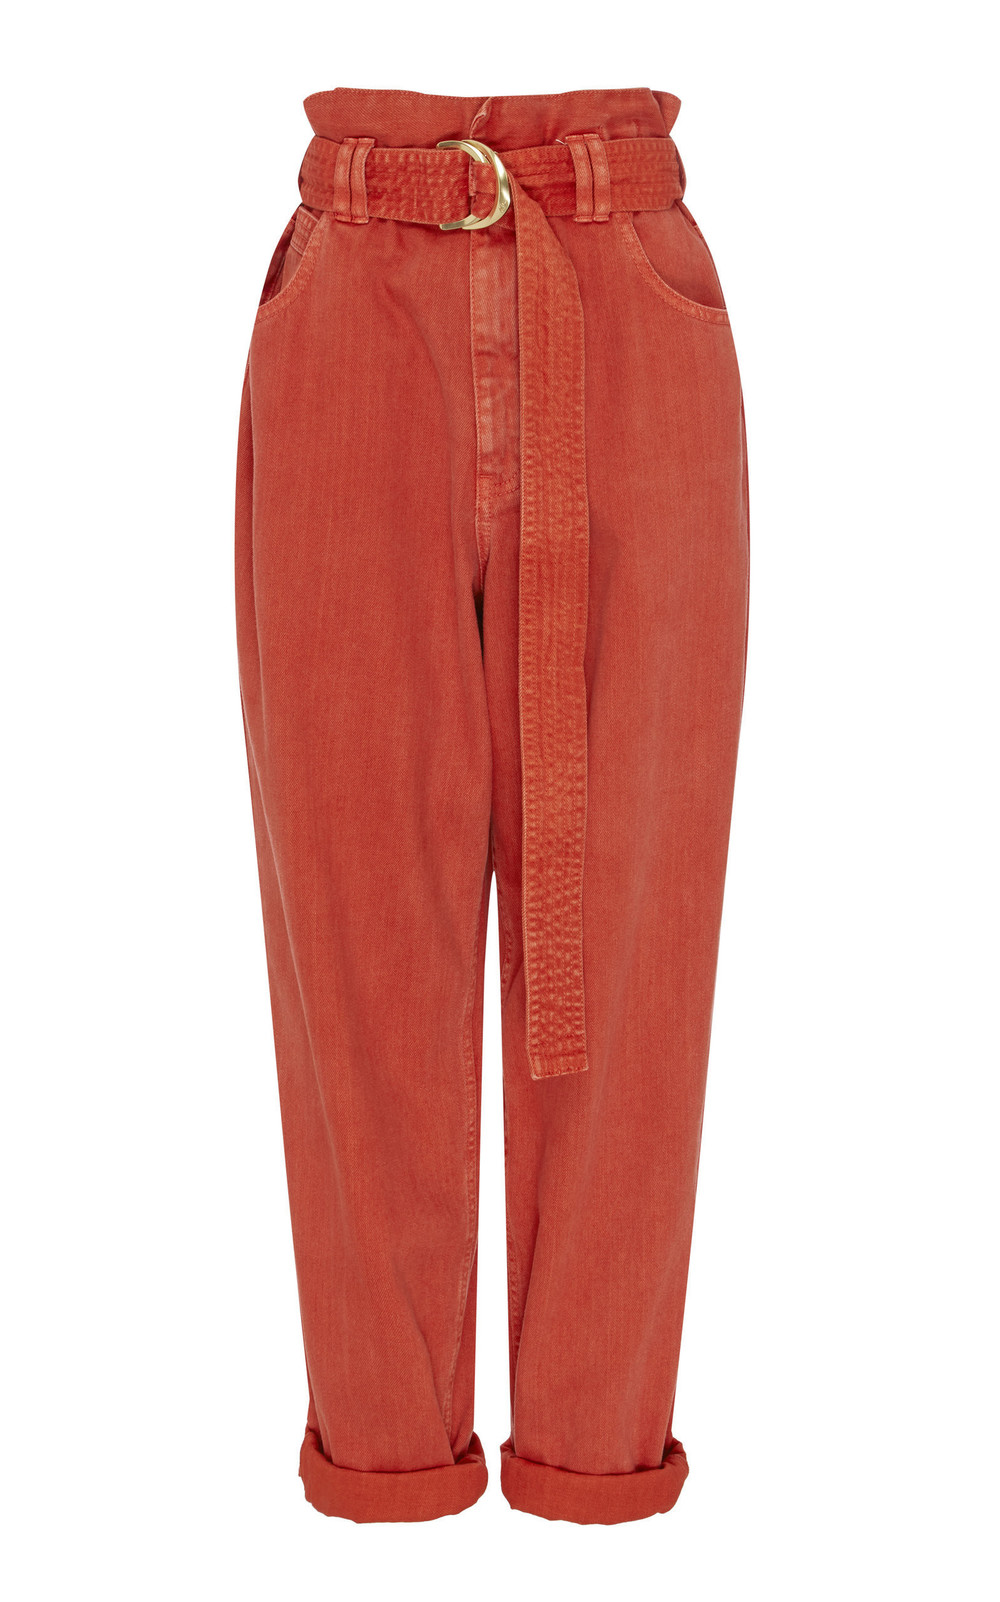 Aje Eucalypt Belted Boyfriend Jeans in red